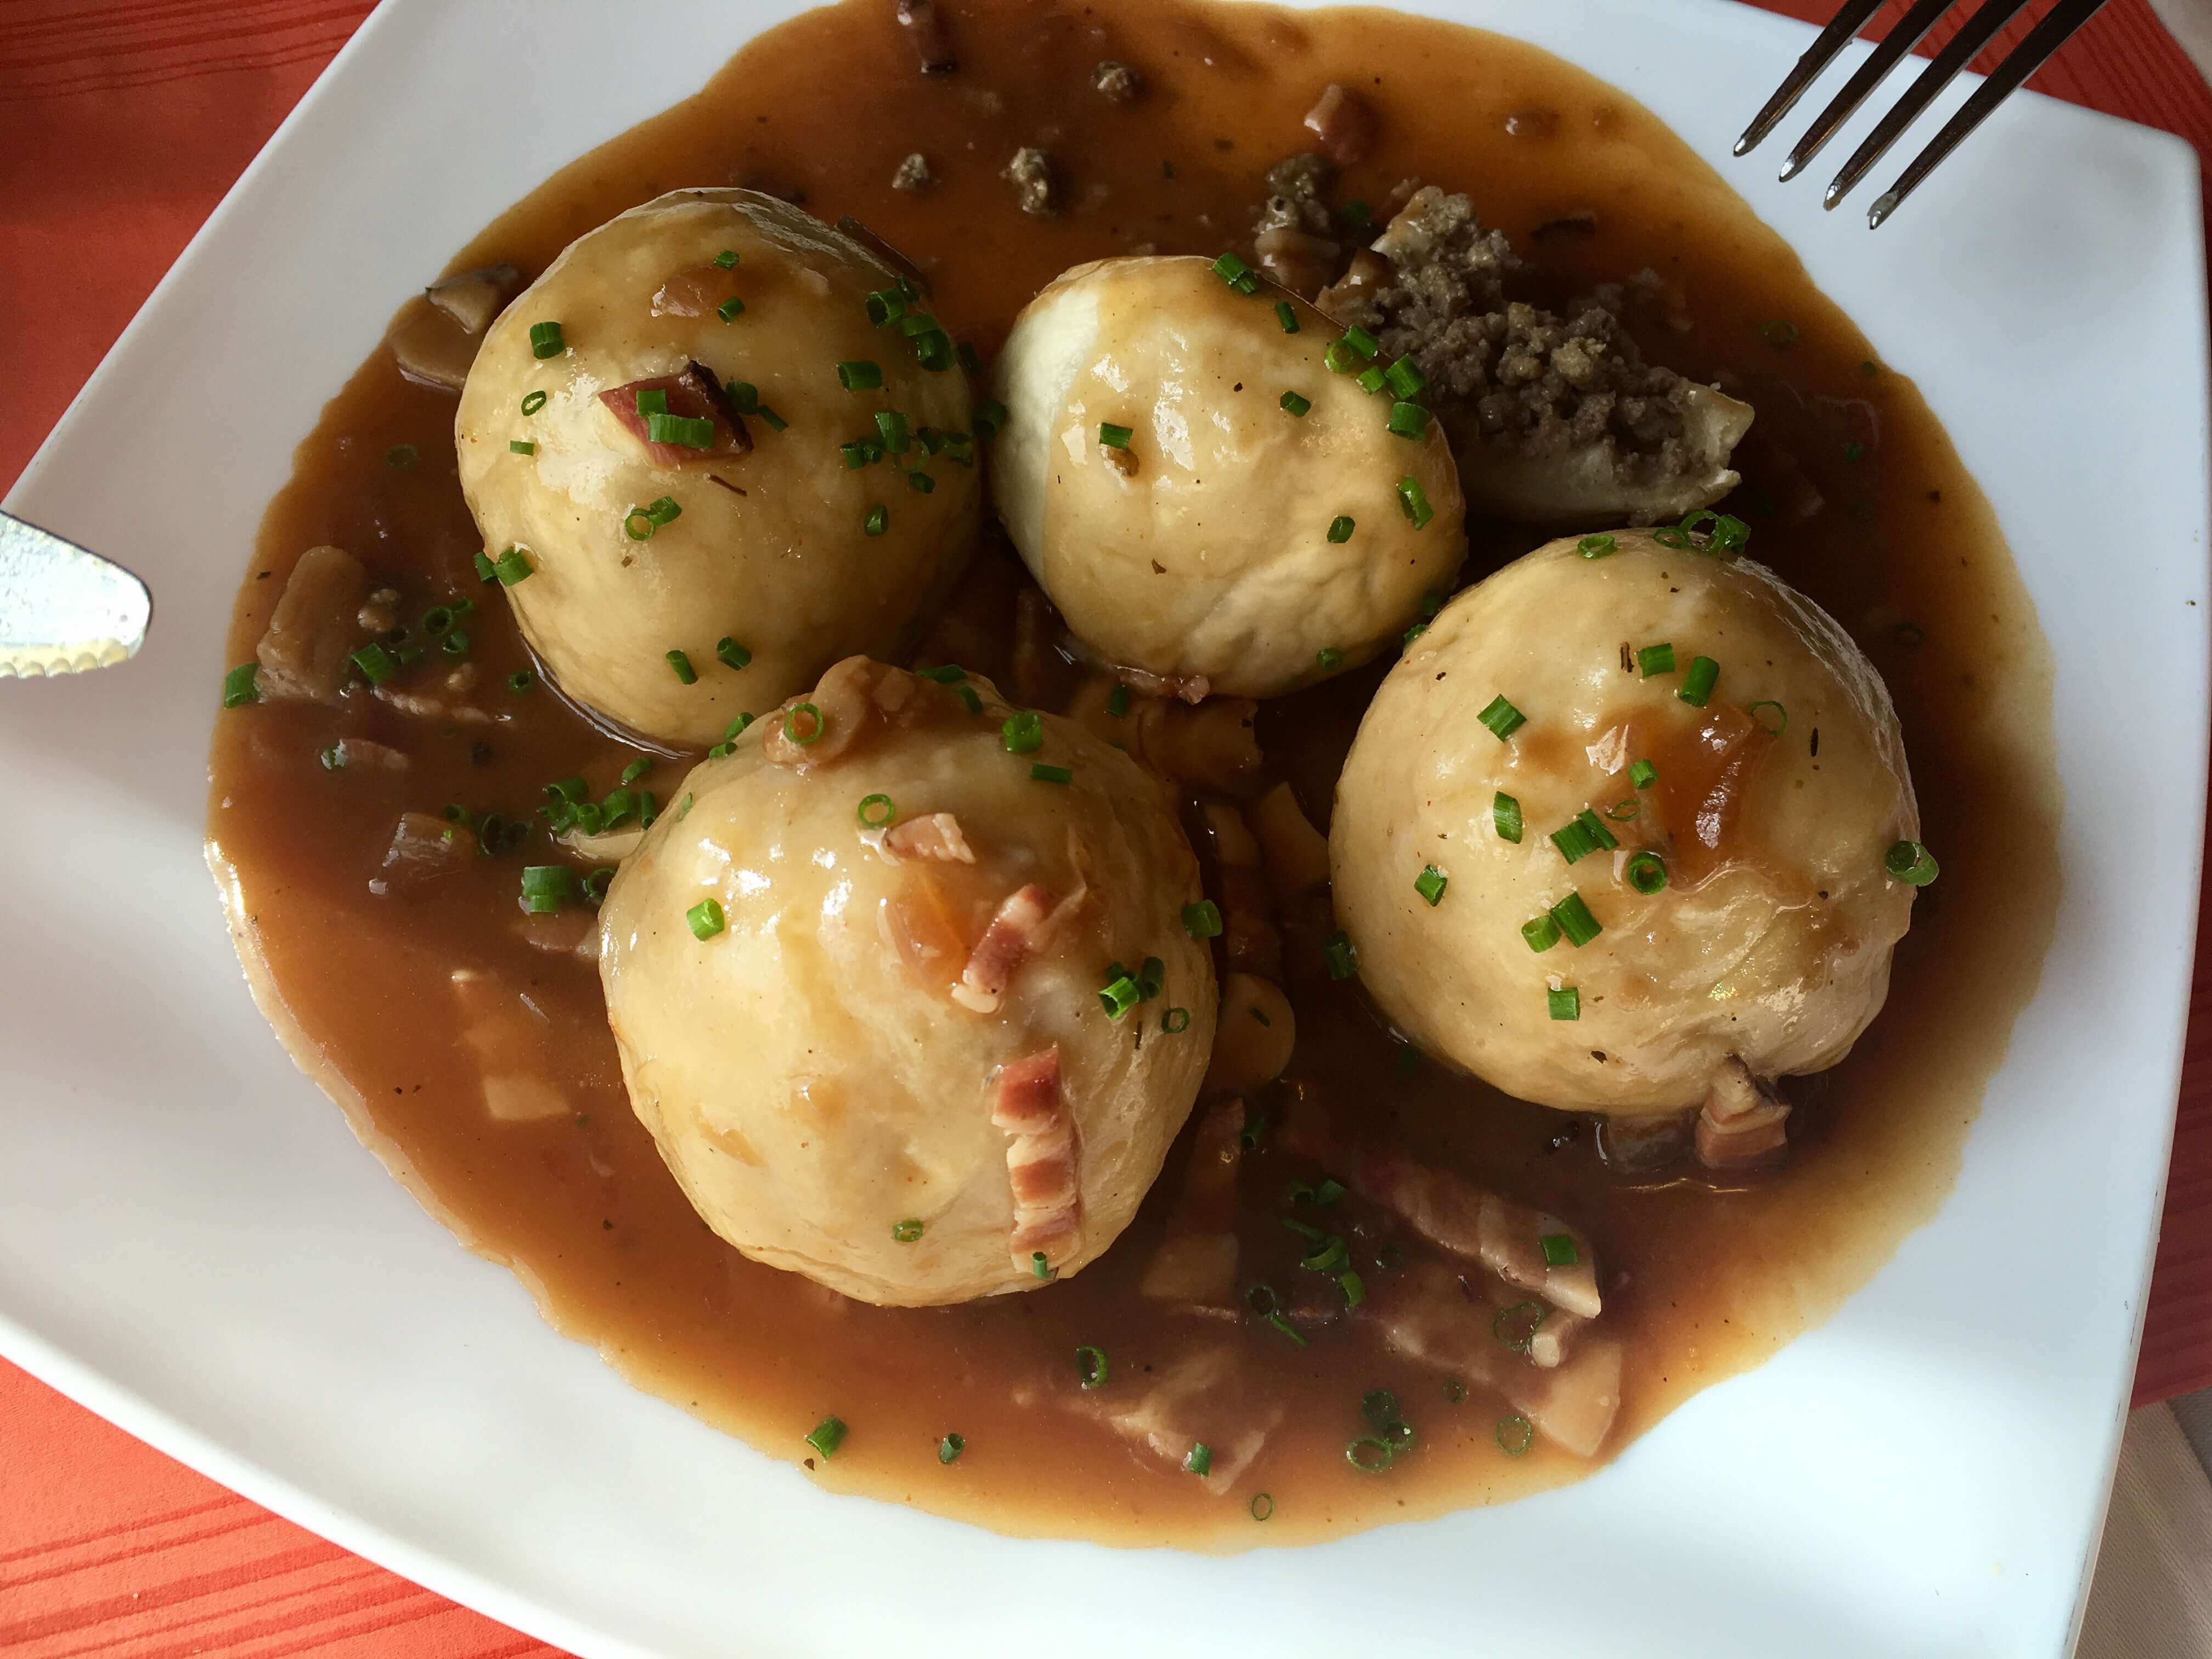 Knödel is the form of dumpling